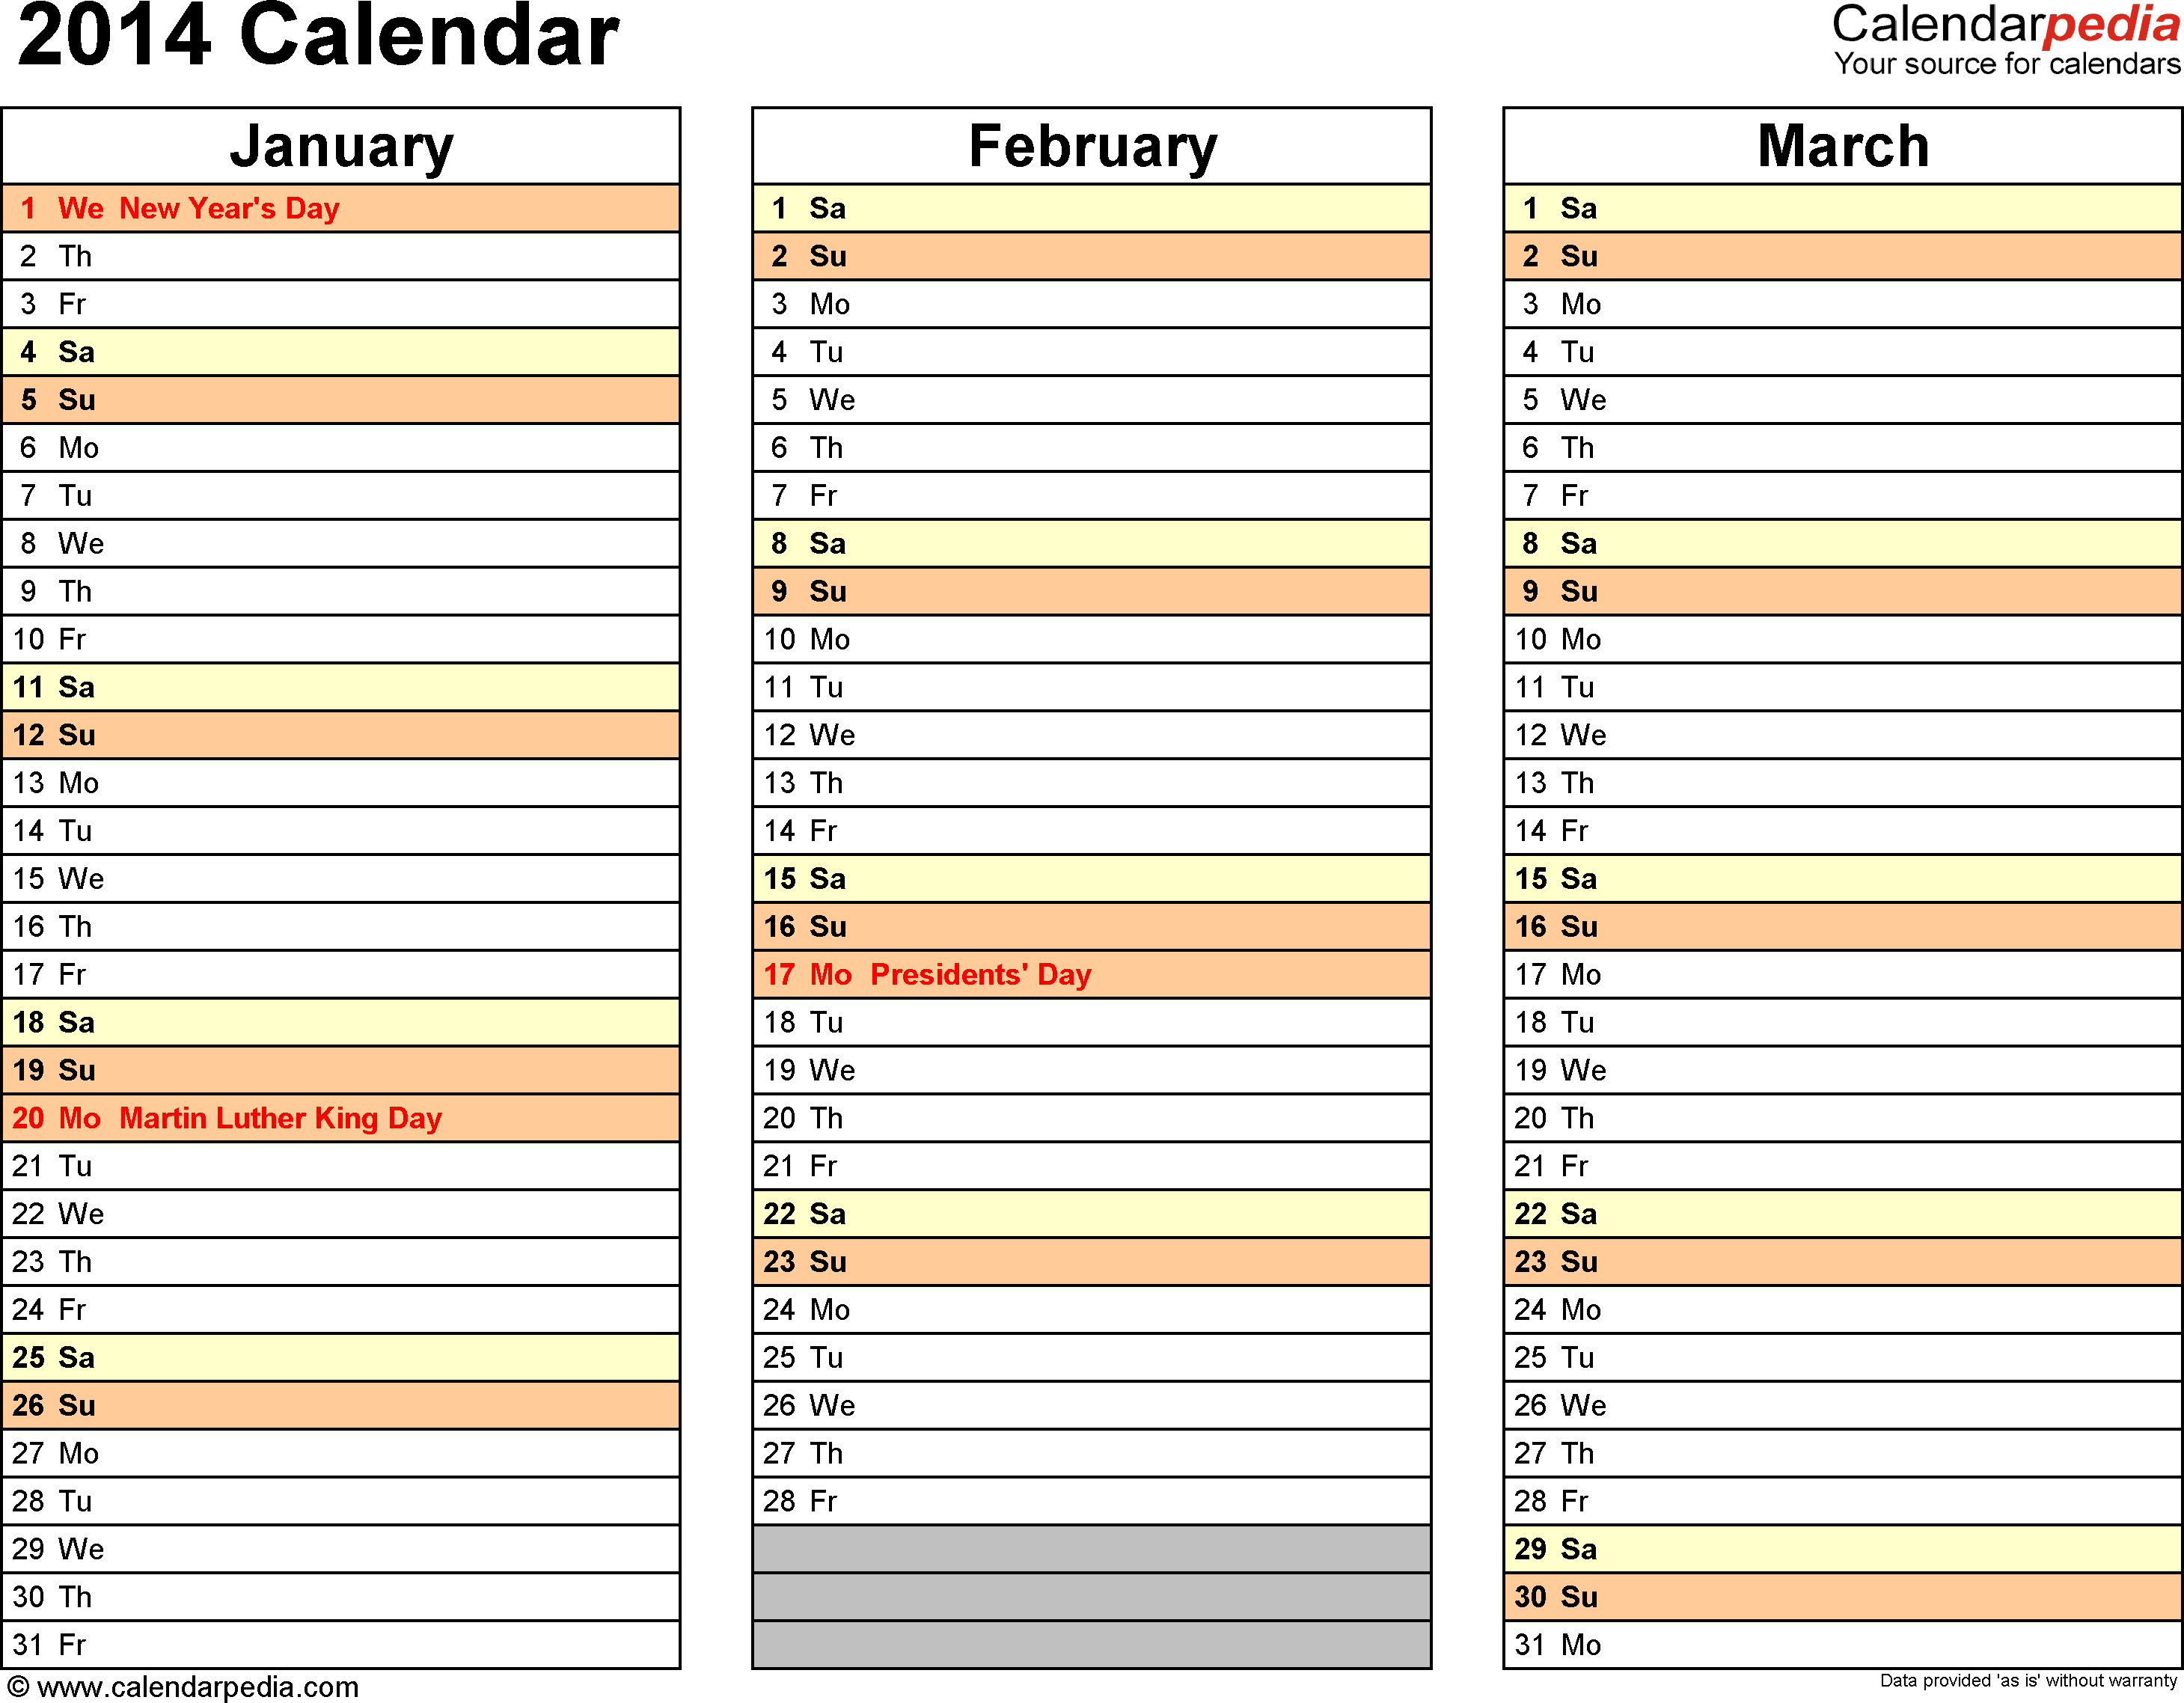 2014 calendar excel 13 free printable templates xlsx for 4 month calendar template 2014